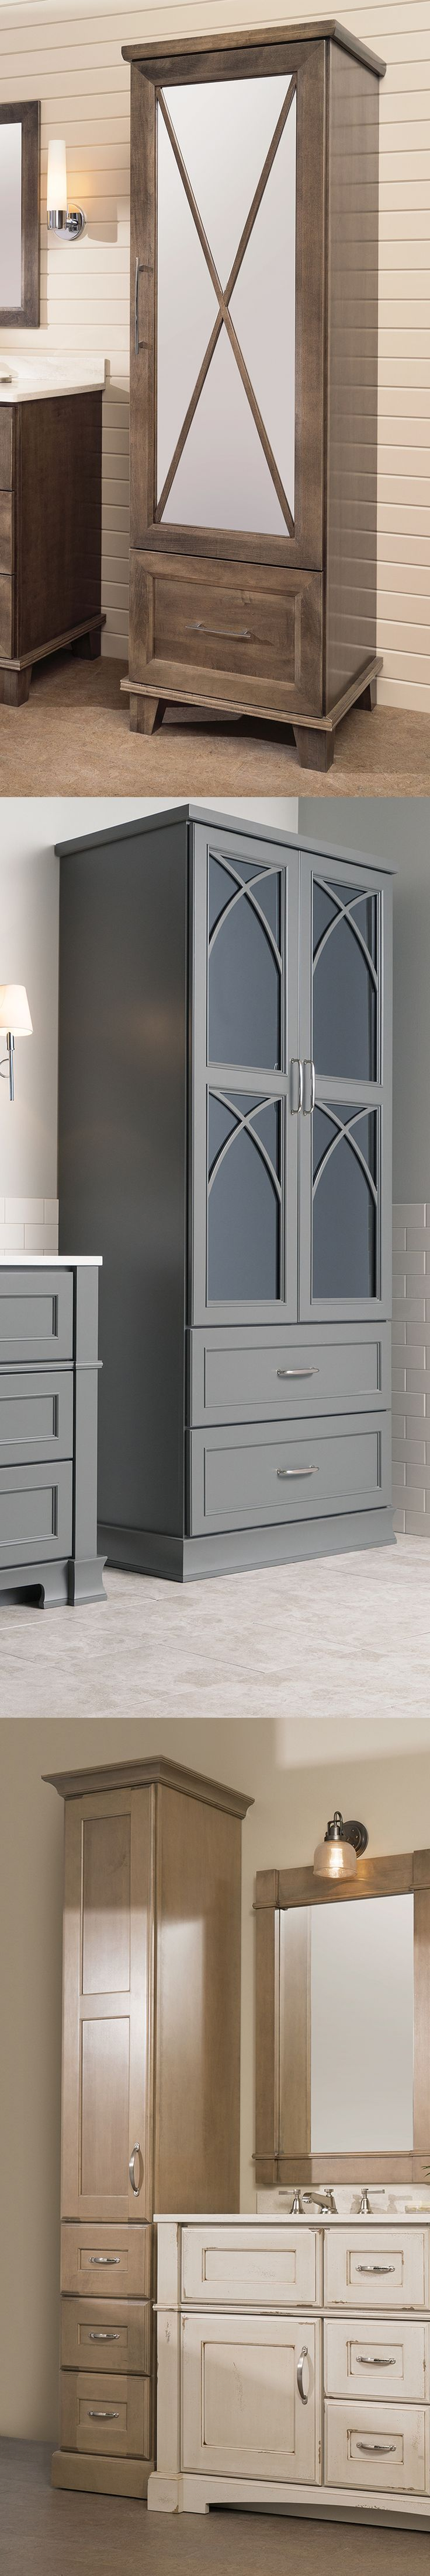 127 best Bathroom cabinets images on Pinterest